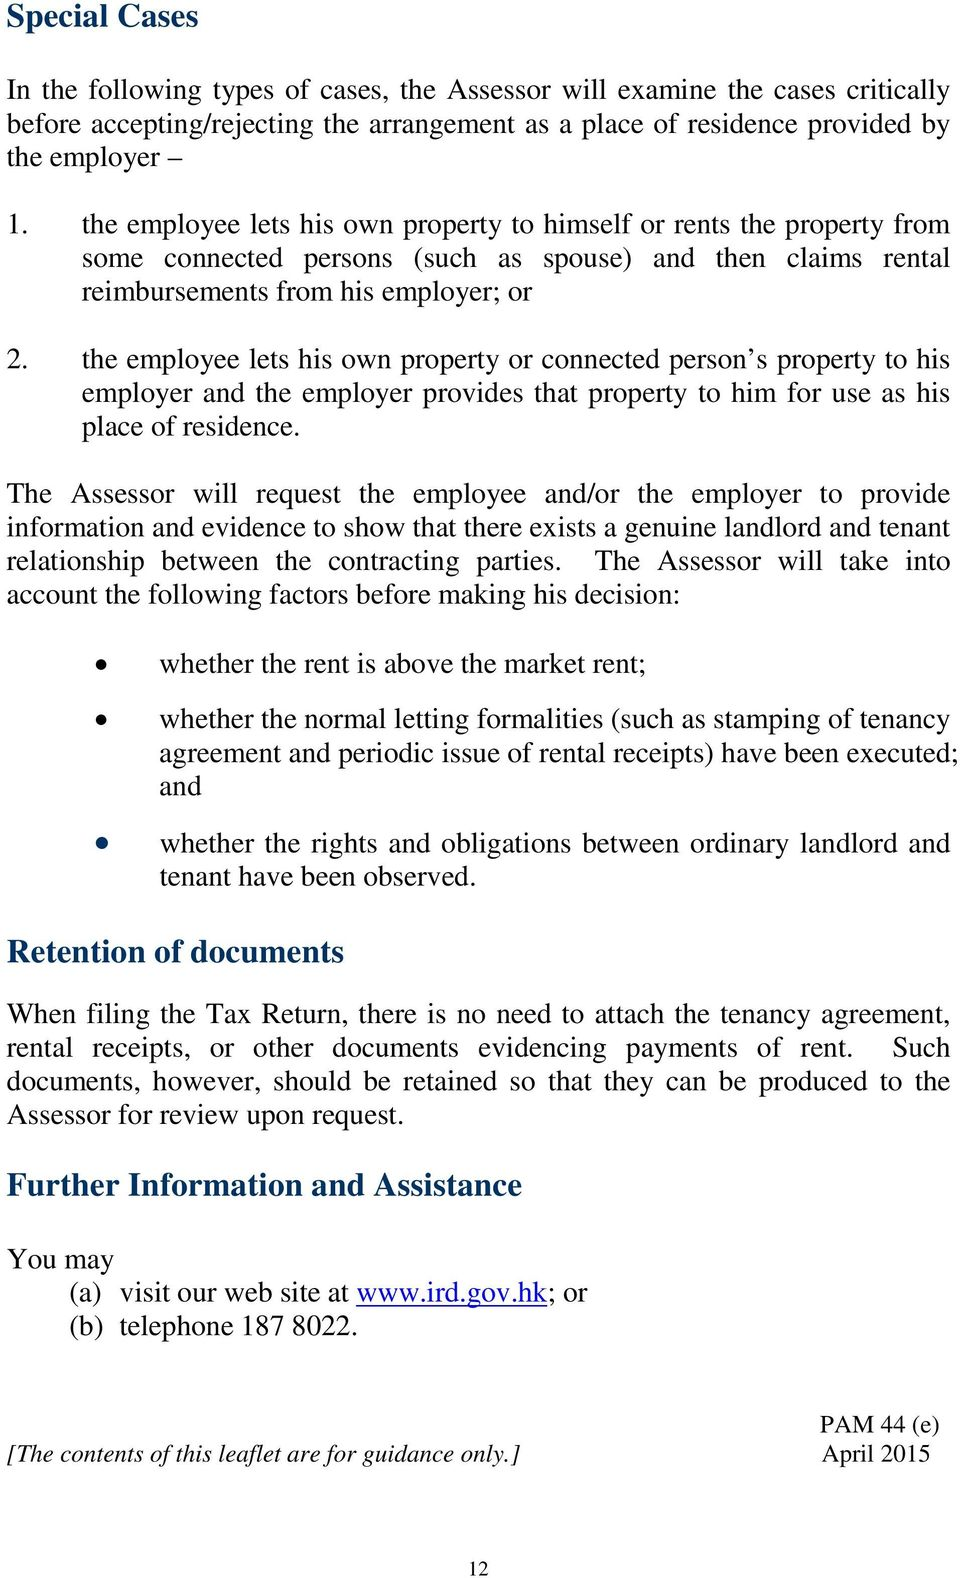 the employee lets his own property or connected person s property to his employer and the employer provides that property to him for use as his place of residence.